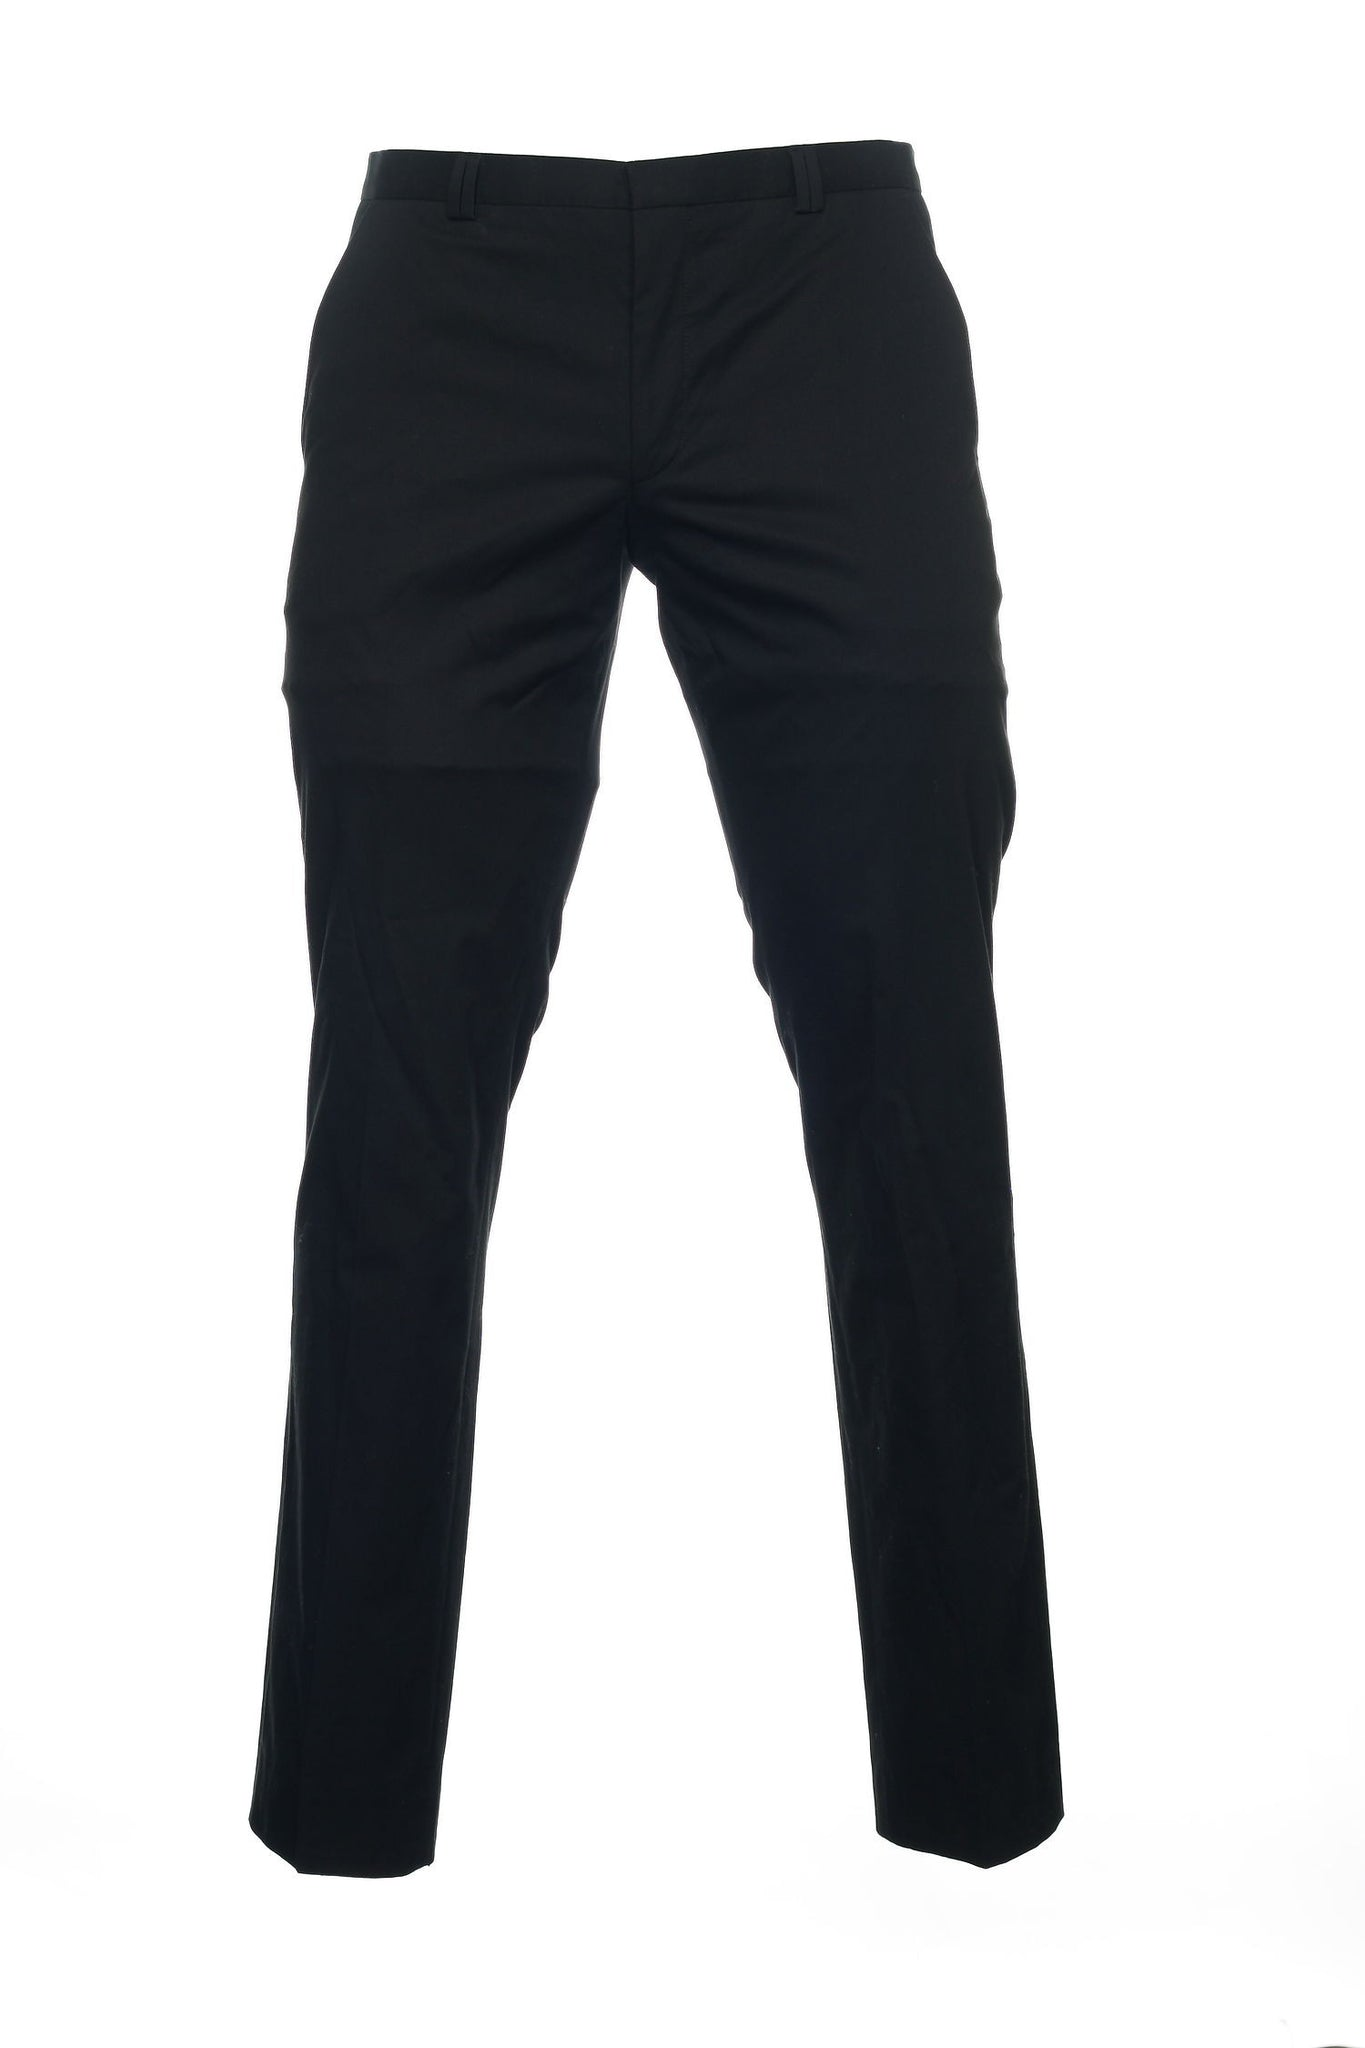 Hugo Boss Mens Black Flat Front Dress Pants